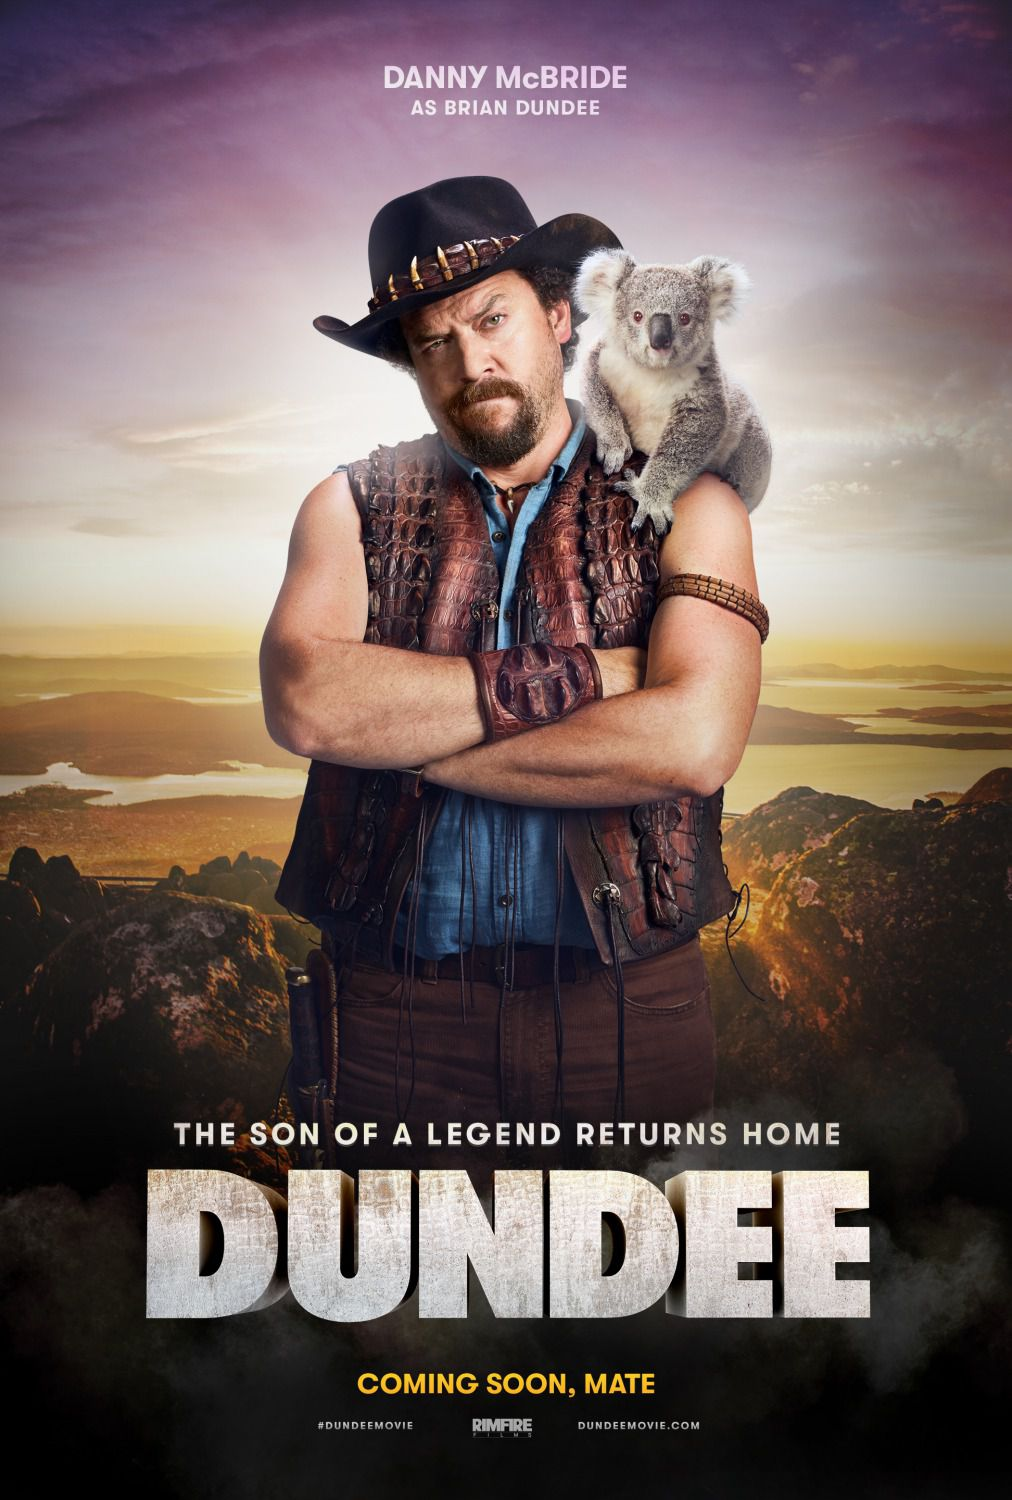 Dundee the Son of a Legend Returns Home - film poster